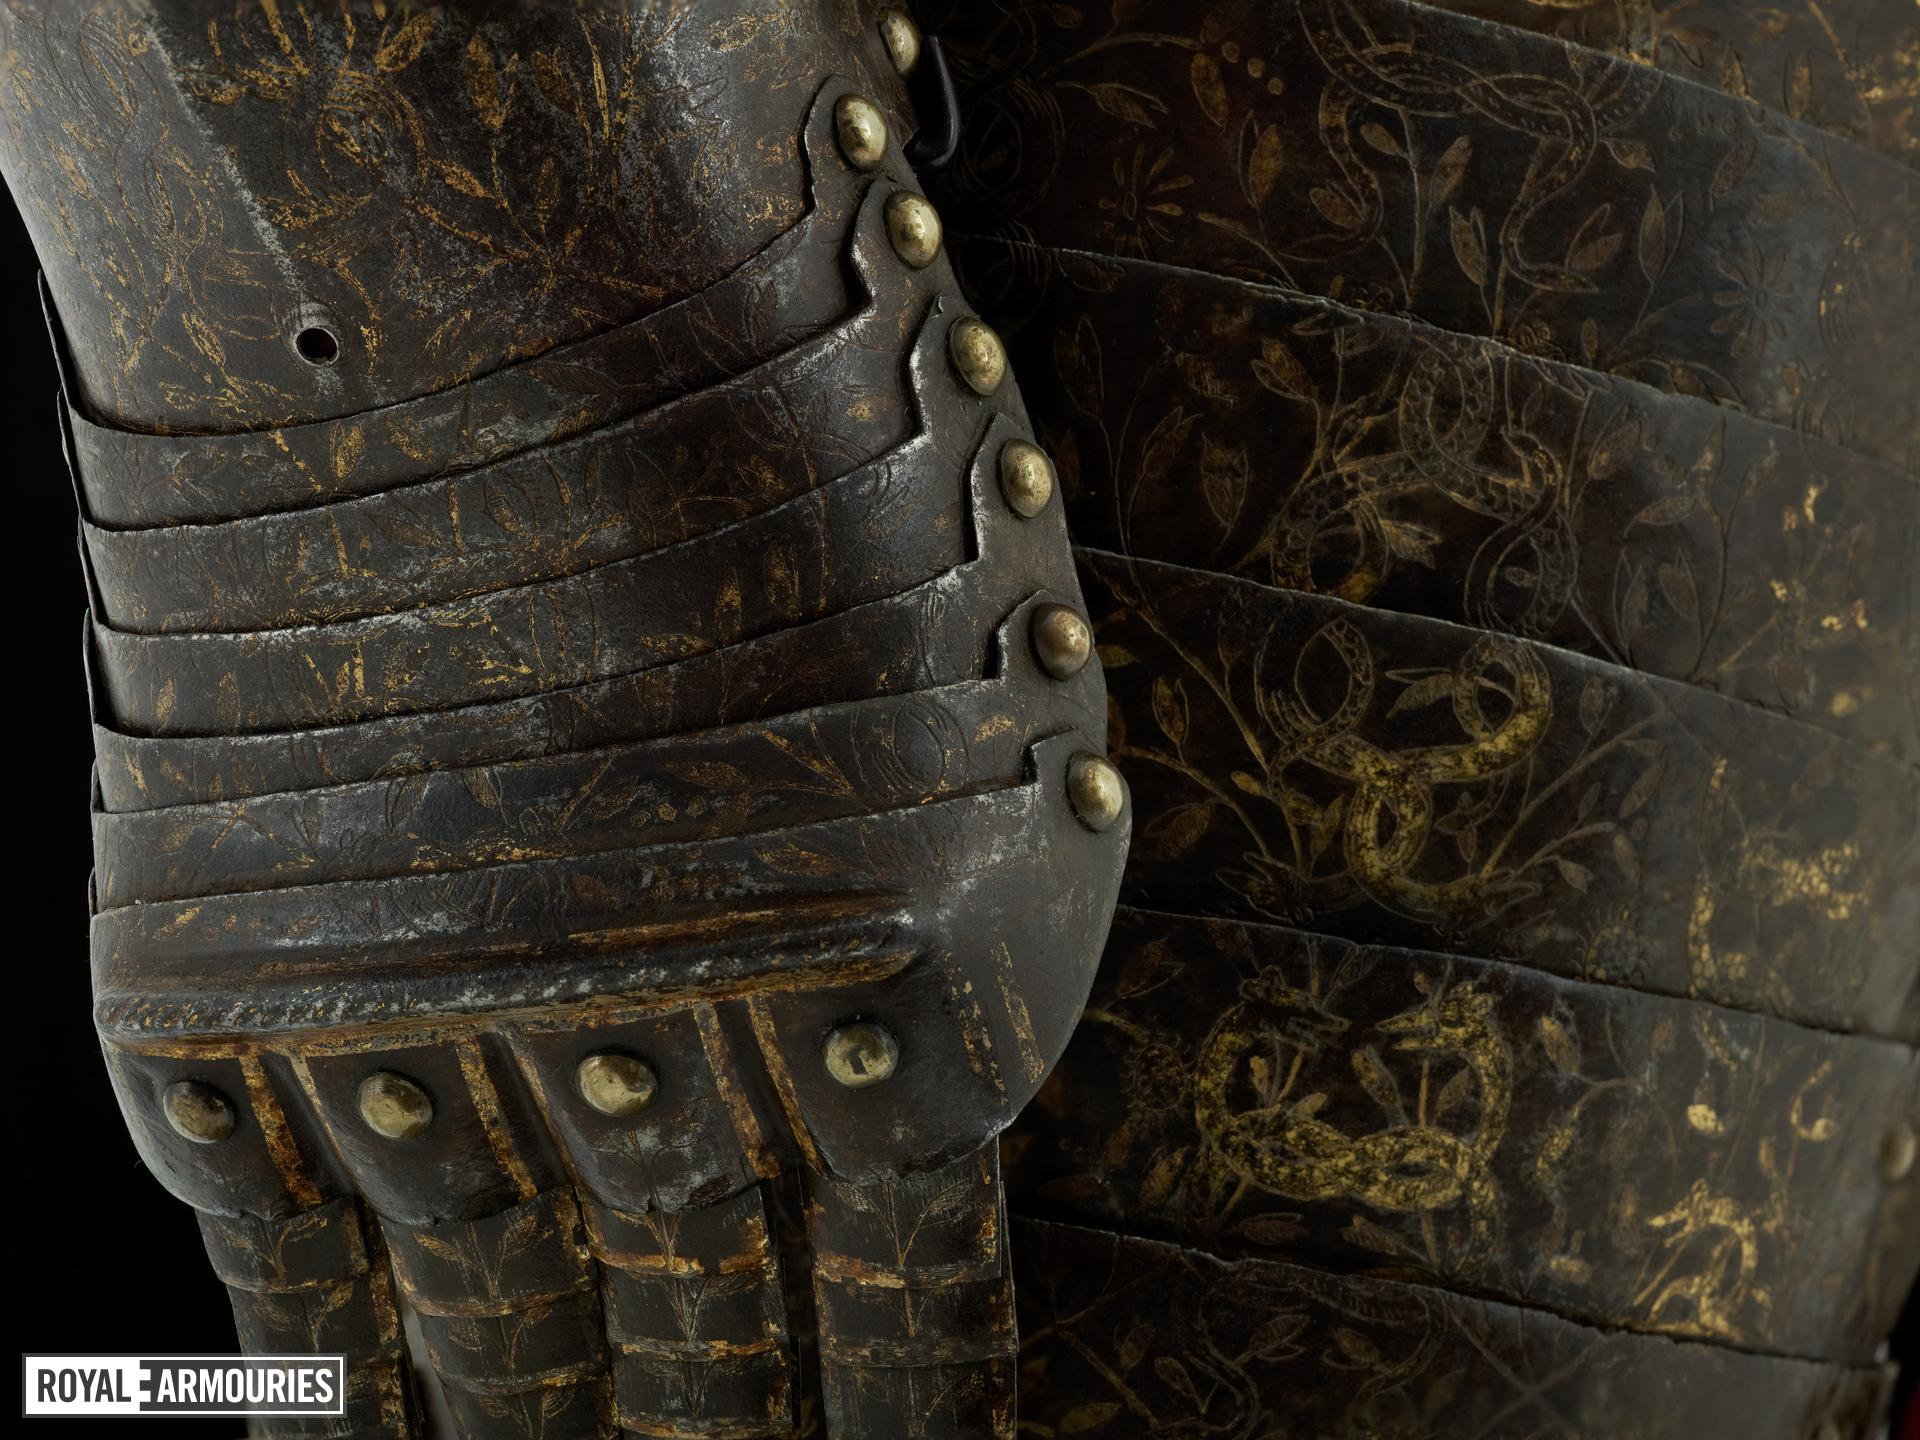 Three-quarter field armour (1600) - Royal Armouries collections